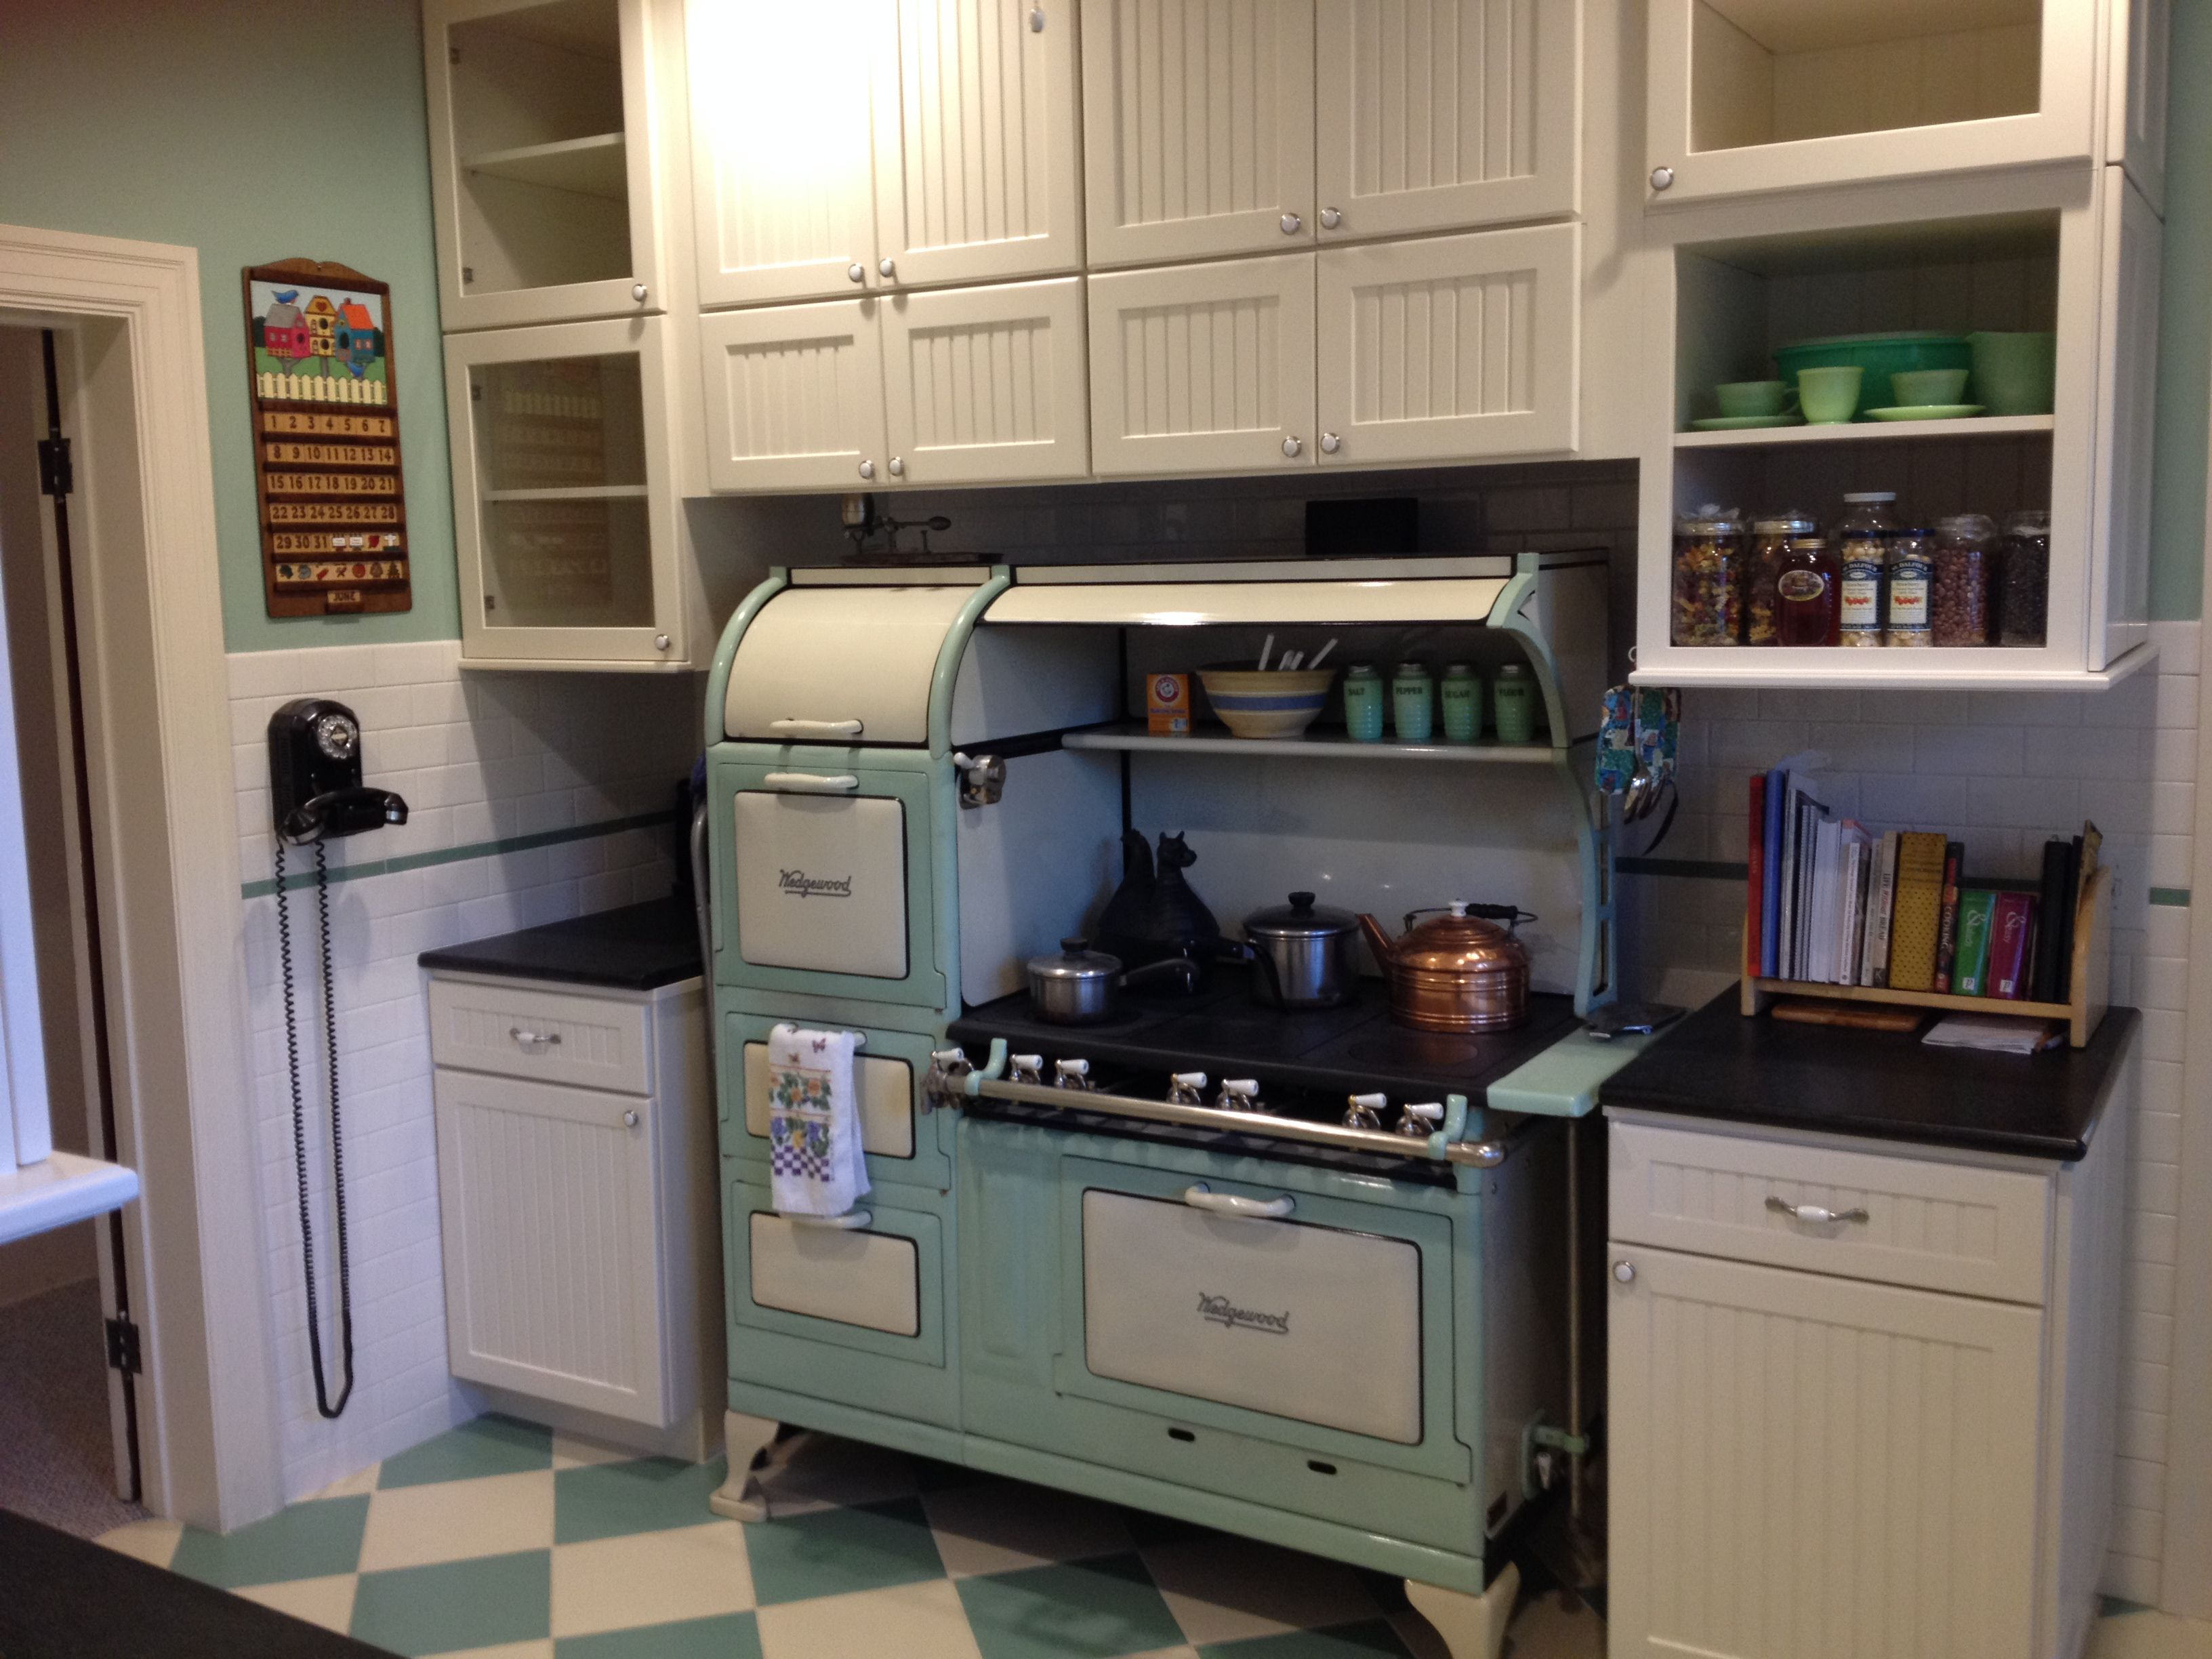 The Mid 1920 S Wedgewood Stove Is Built To Last And Easy To Use But Puts Out A Lot Of Heat A Modern Hood And Vent Concealed In The Upper Cabinets Keep T